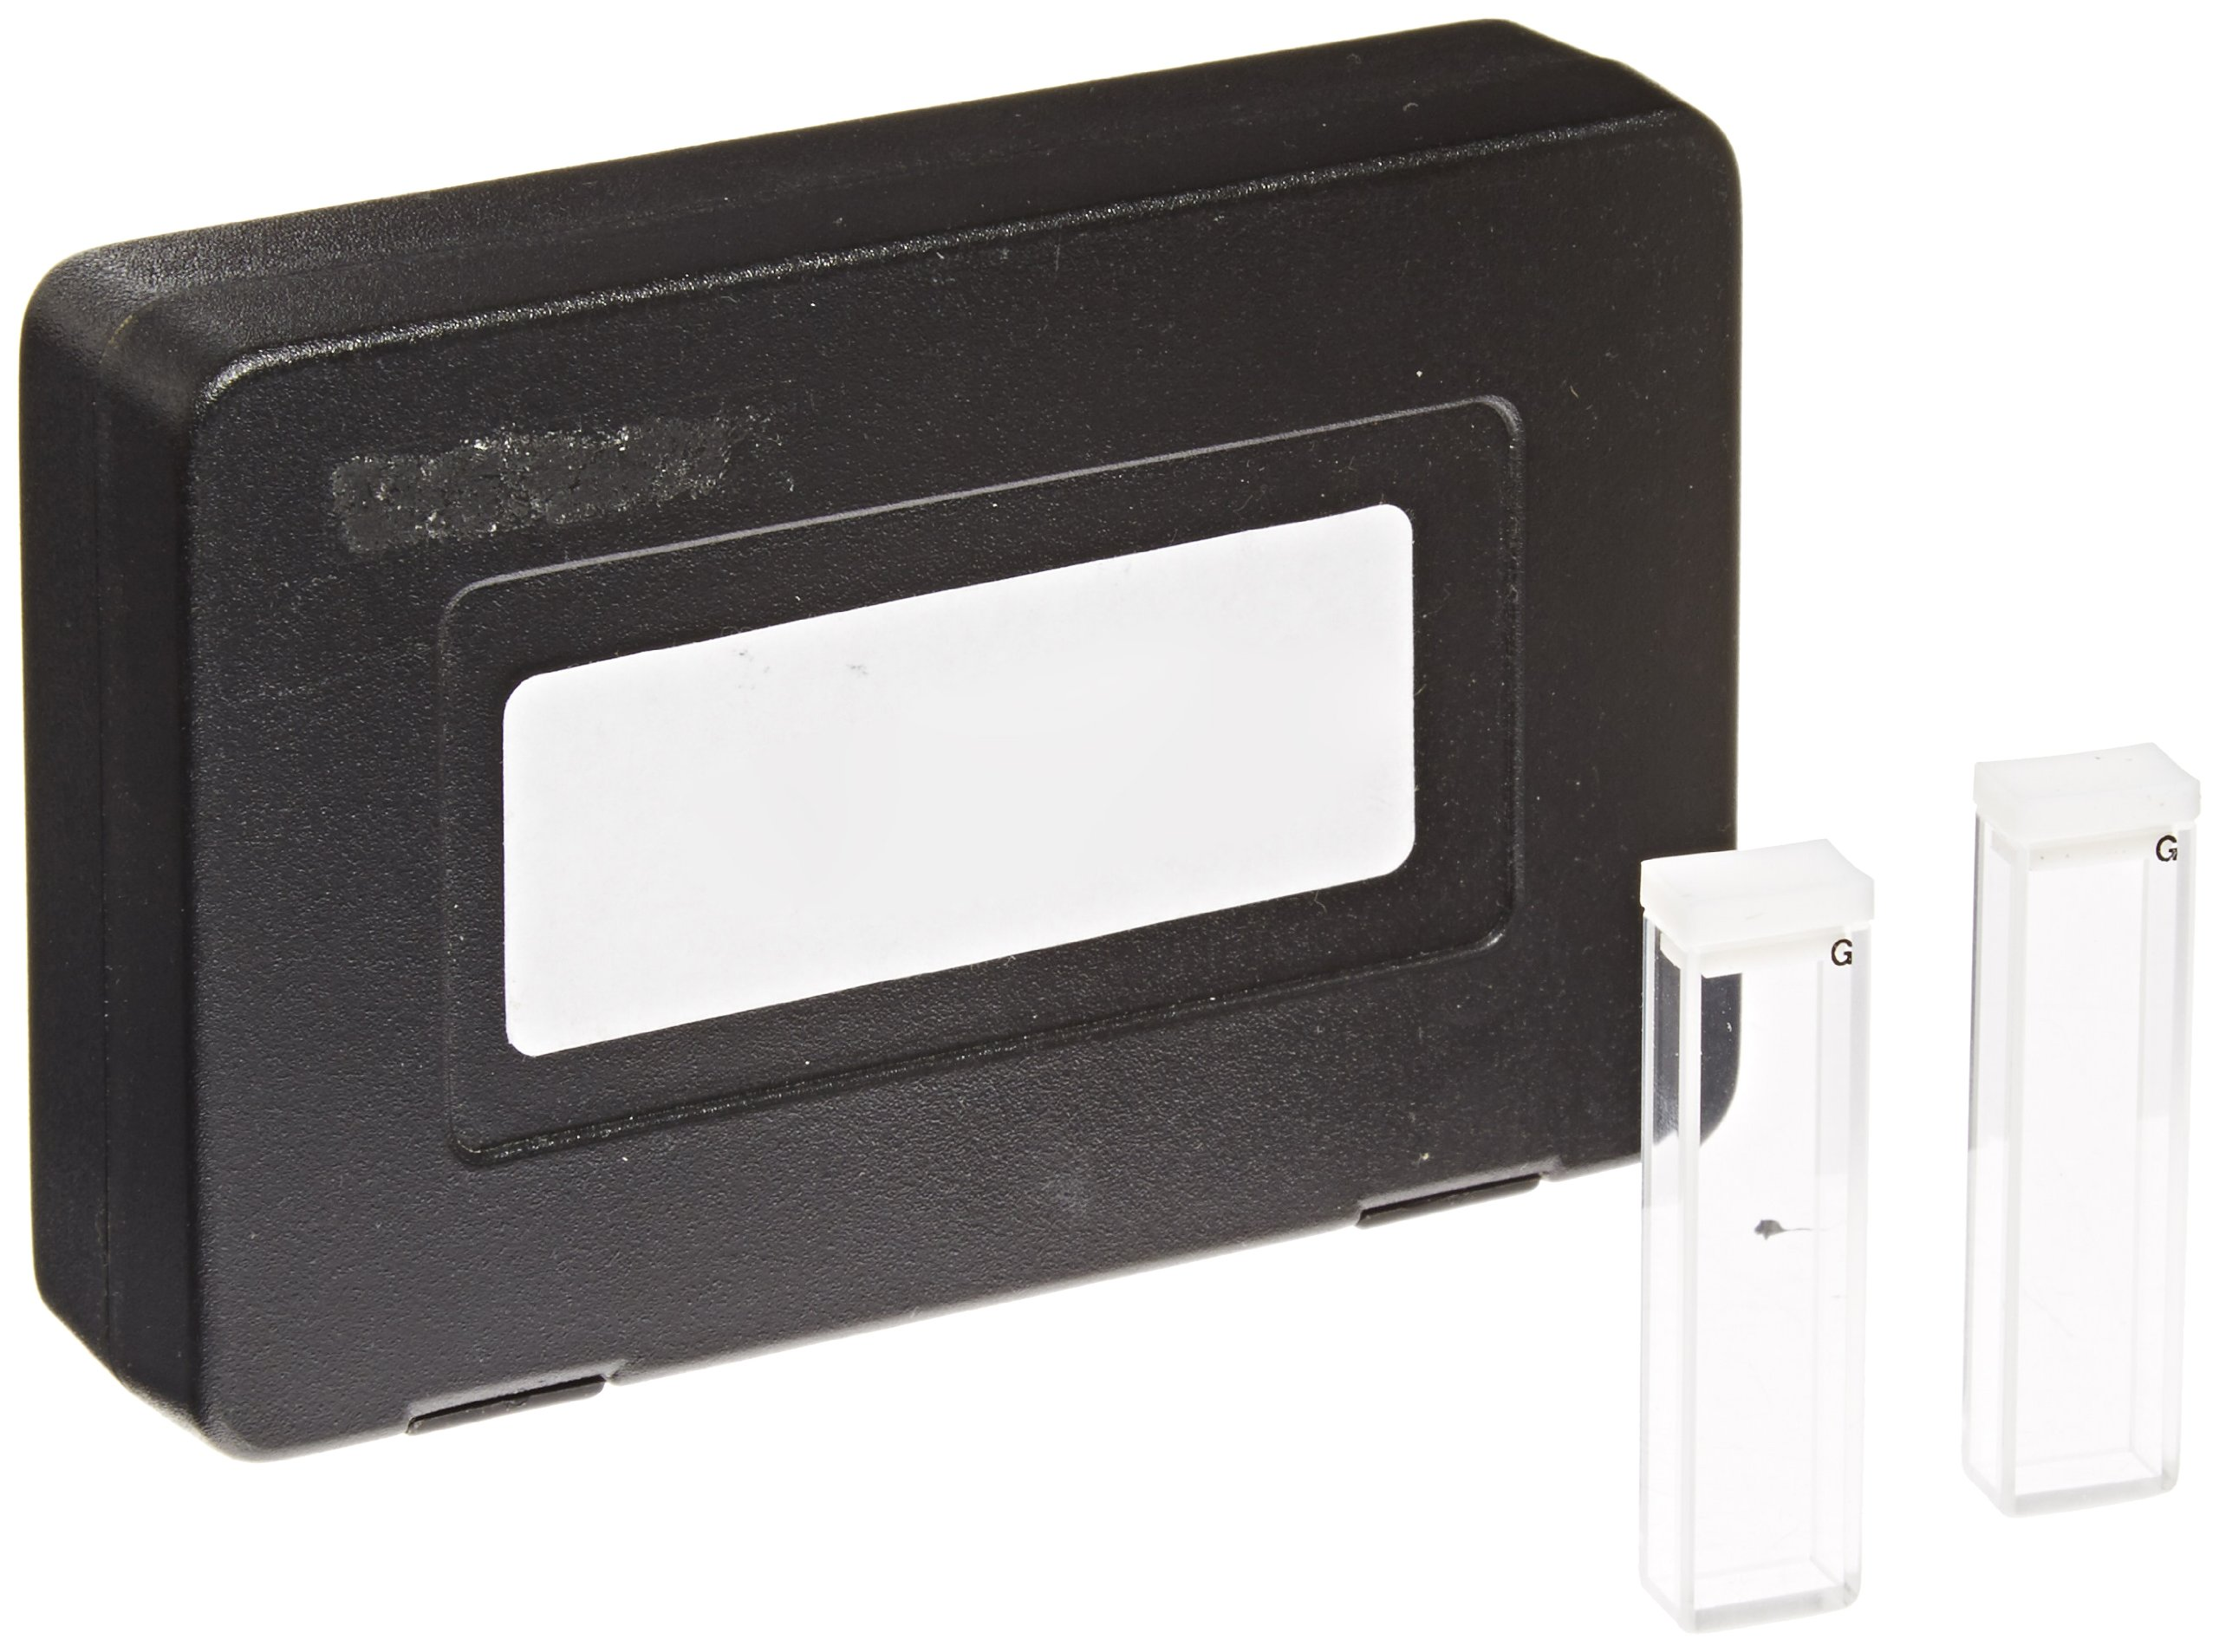 Varsal Type 3-G-5 Optical Glass Fluorometer Rectangular Spectrophotometer Cell with Lid, 5mm Pathlength, 1.7ml Capacity, 360nm to 2500nm Range (Case of 2)